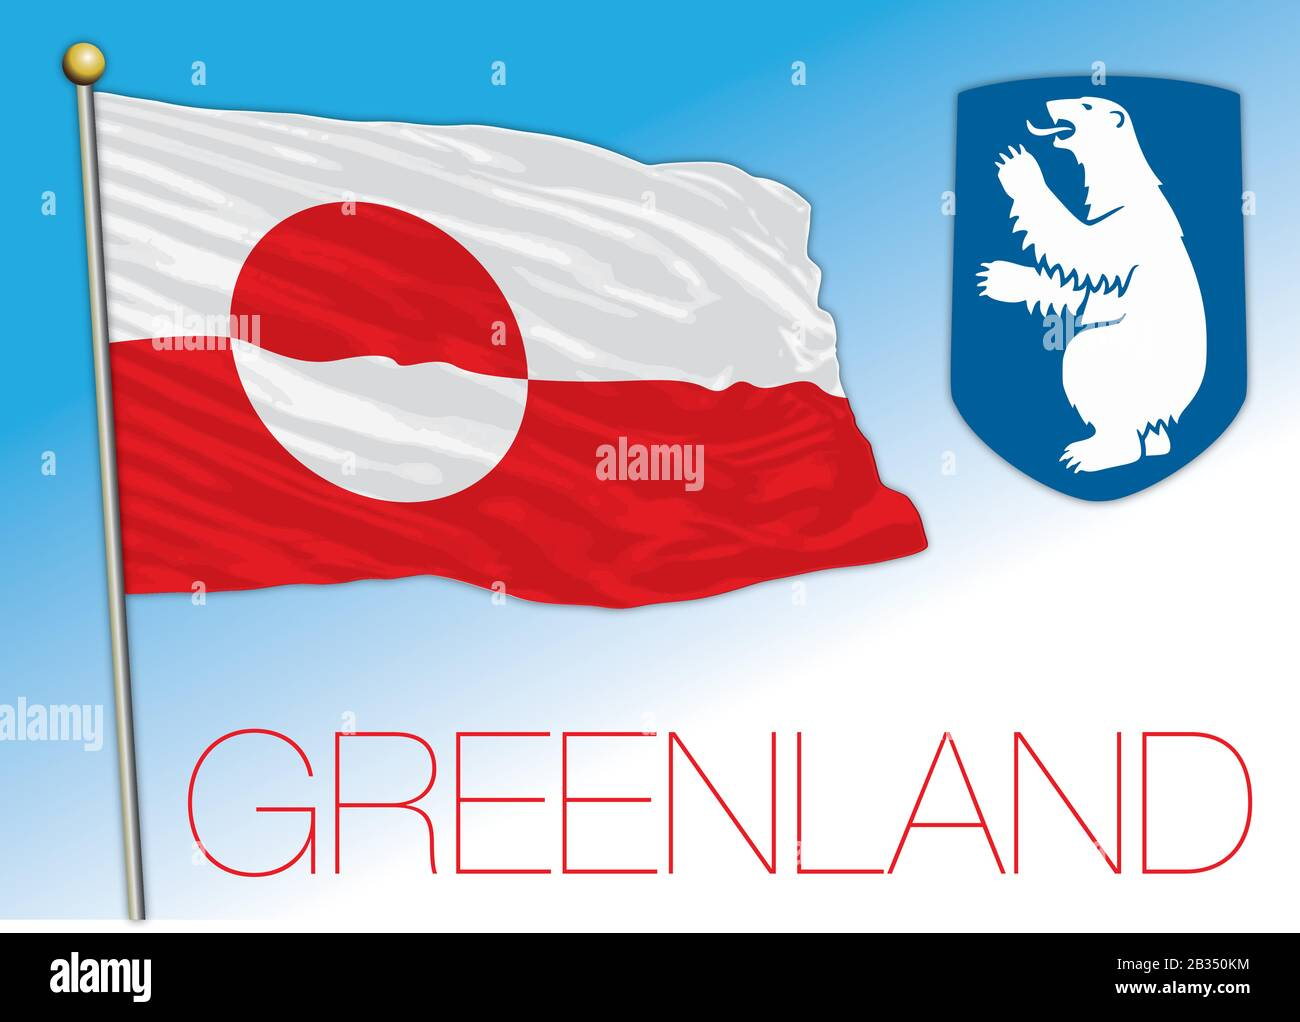 Greenland official national flag and coat of arms, american territory, Denmark, vector illustration Stock Vector